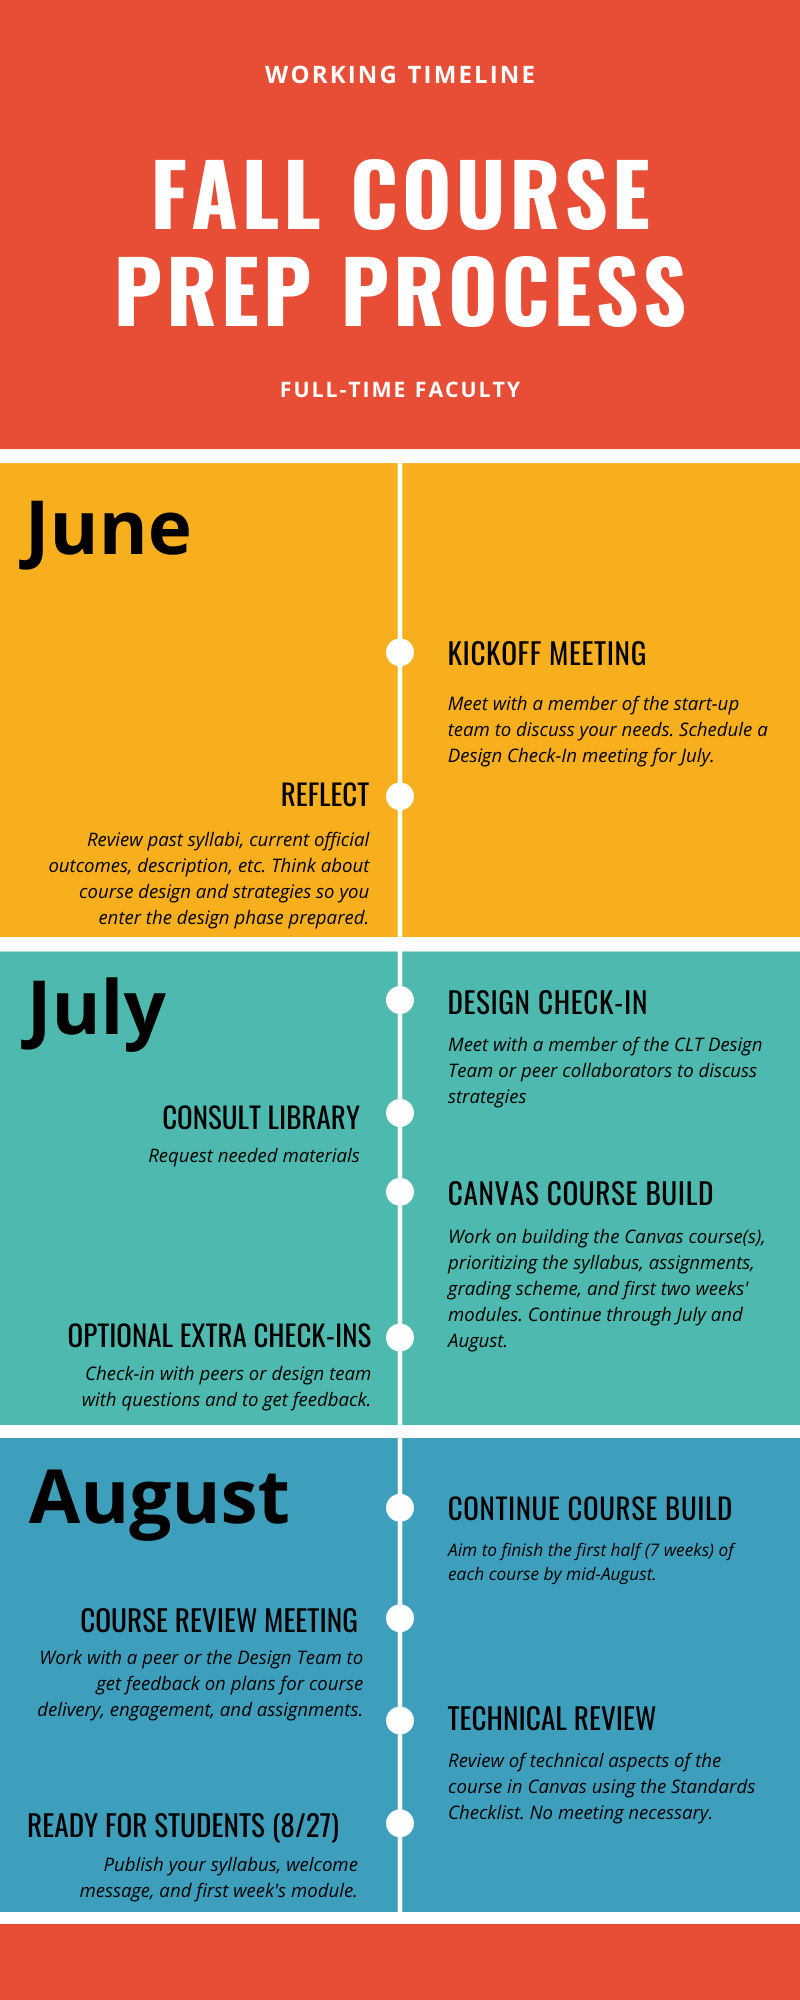 Infographic by month summarizing the timeline for the project, oriented towards full-time faculty. June includes the Kickoff Meeting and reflection on the course. July includes a Design Check-In, optional Library consultation, building the course in Canvas, and an optional opportunity to check in with design advisors again. August includes continuing the course build, course review meeting, technical review, and being ready for students by the end of the month.